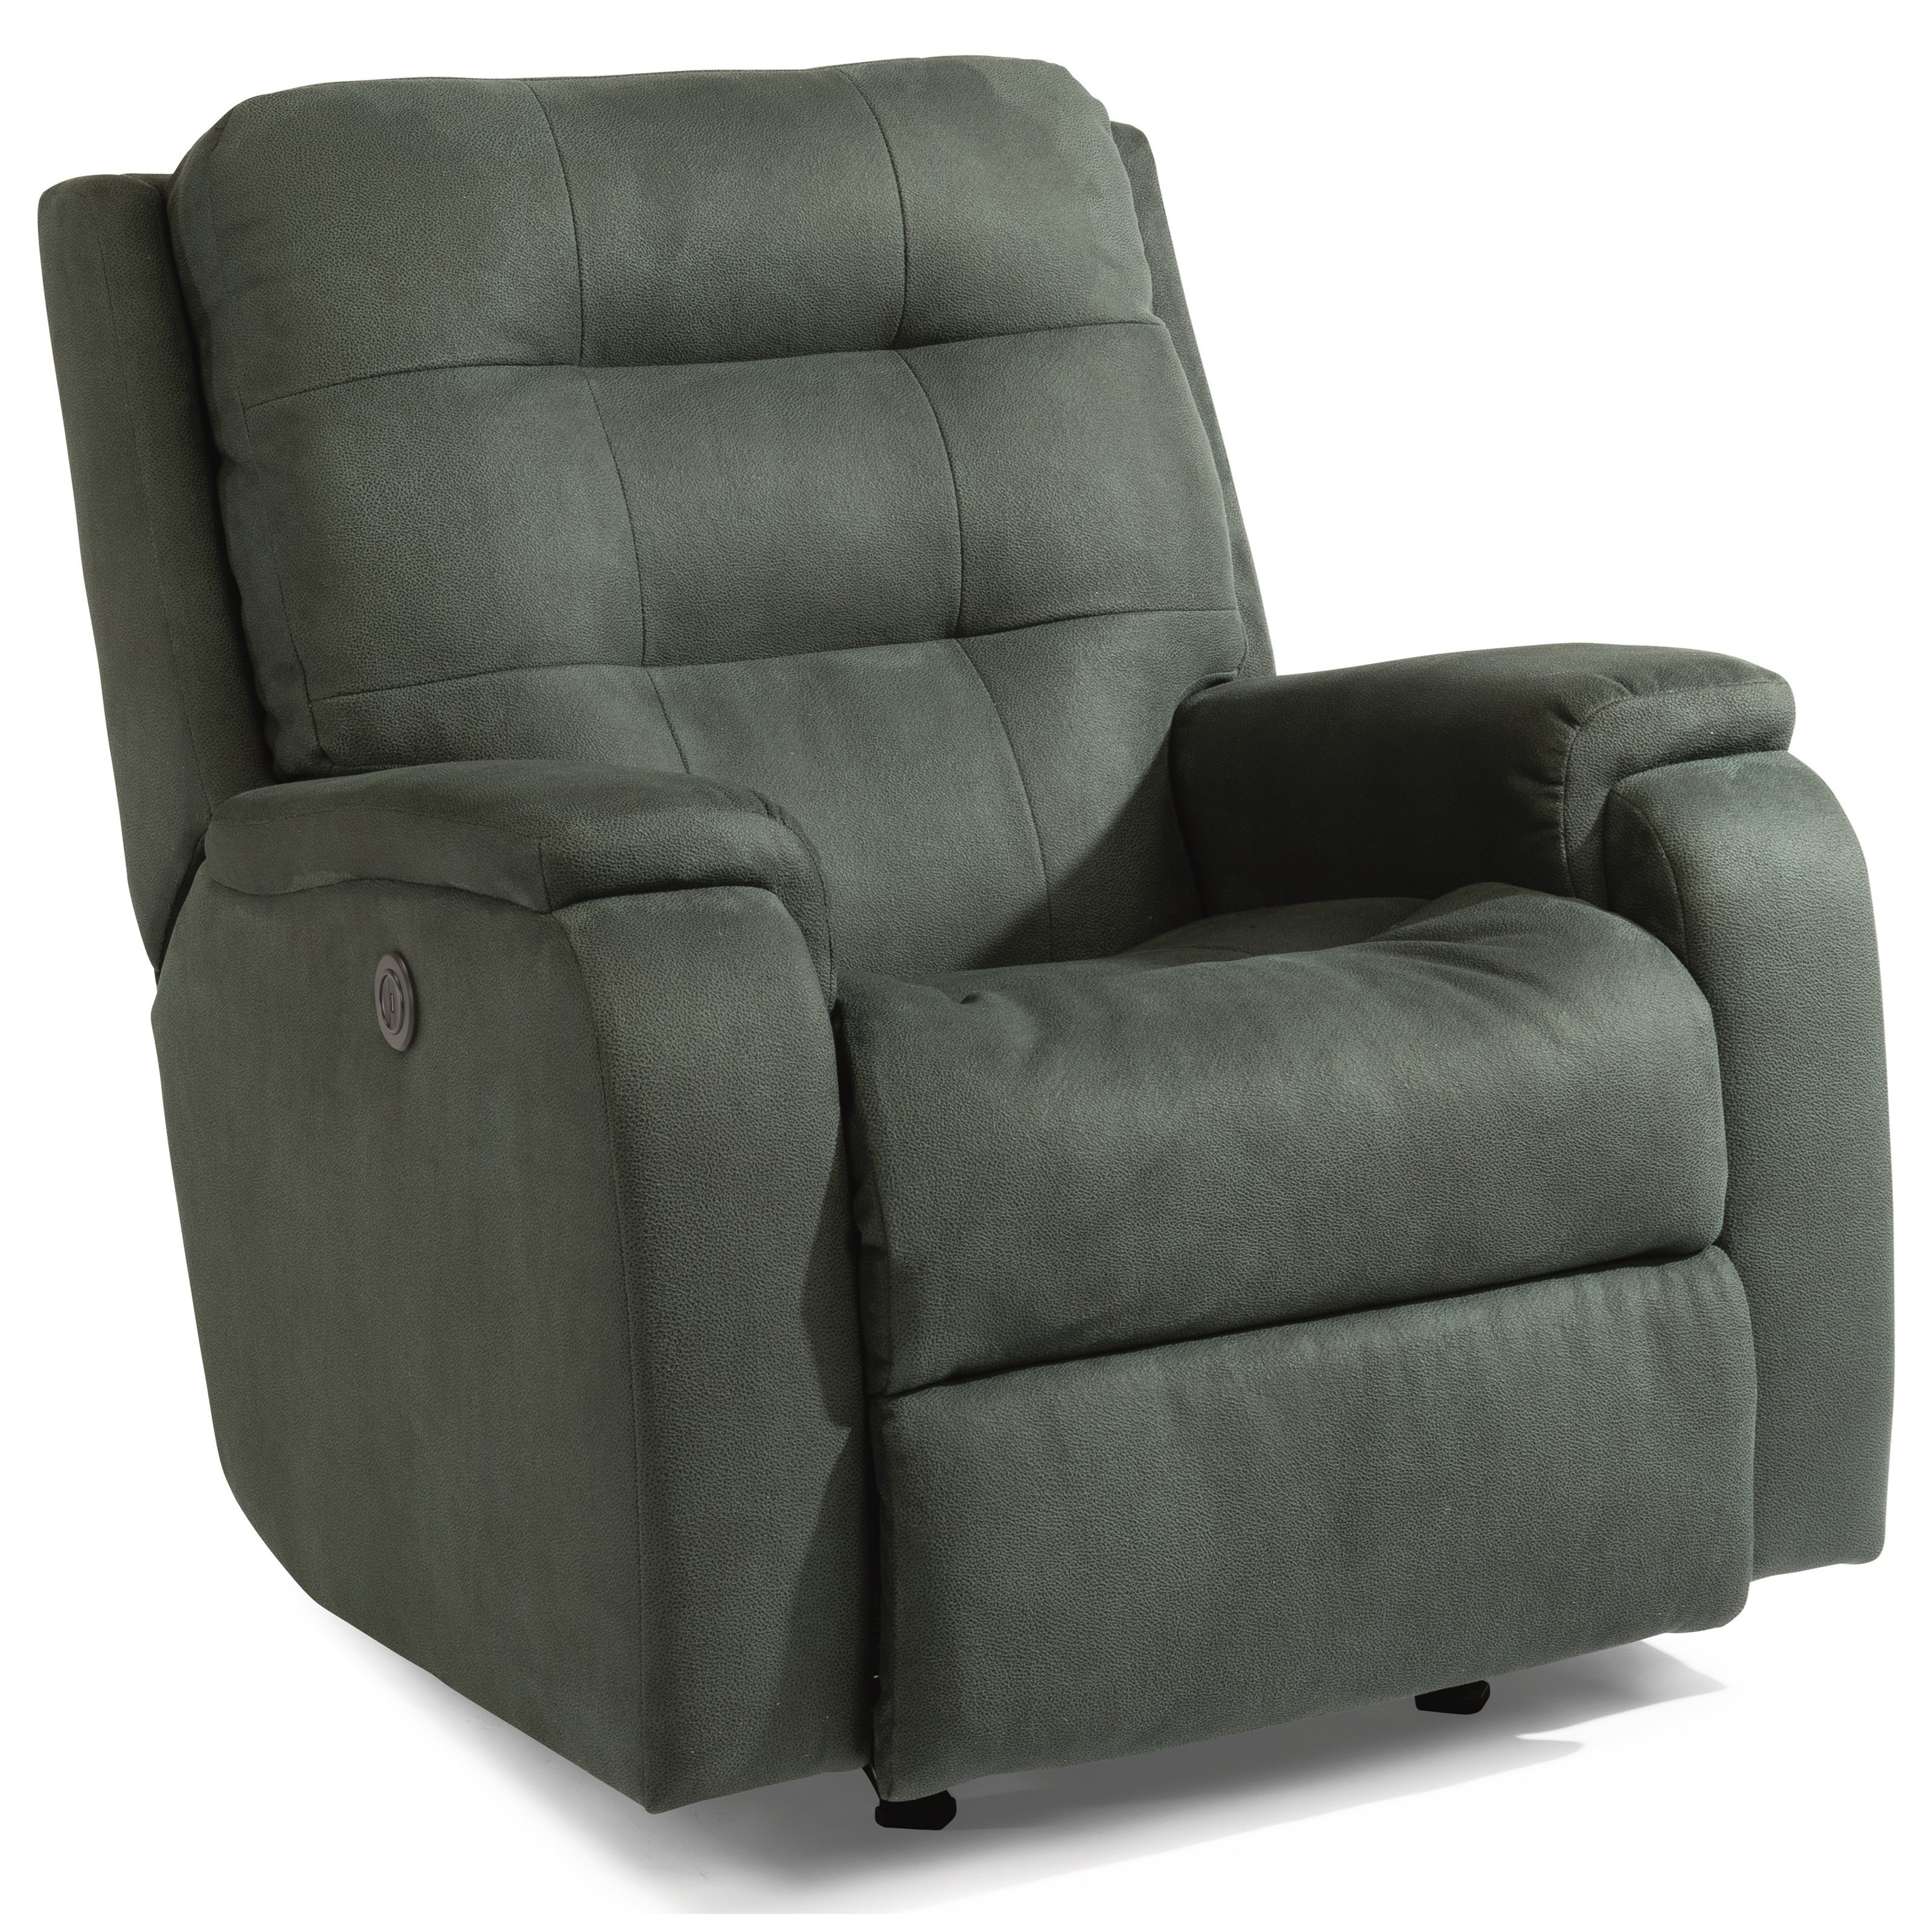 Arlo Power Rocking Recliner by Flexsteel at Rooms and Rest